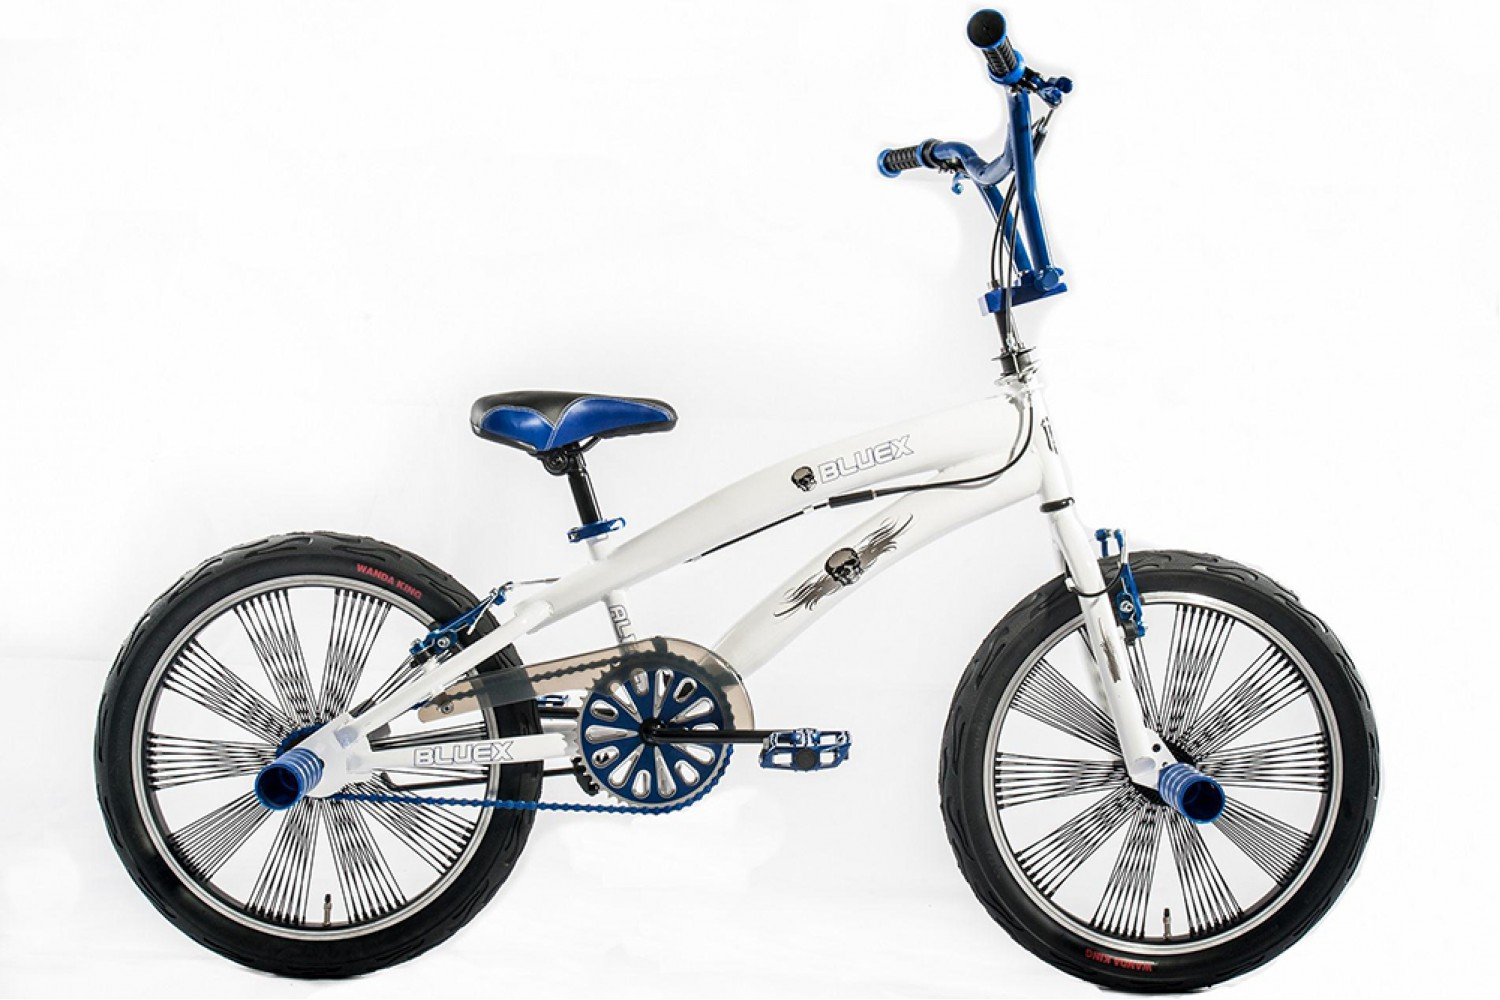 Wonderbaarlijk Crossfiets 20 inch BMX Altec Bluex | City-Bikes.nl GV-68